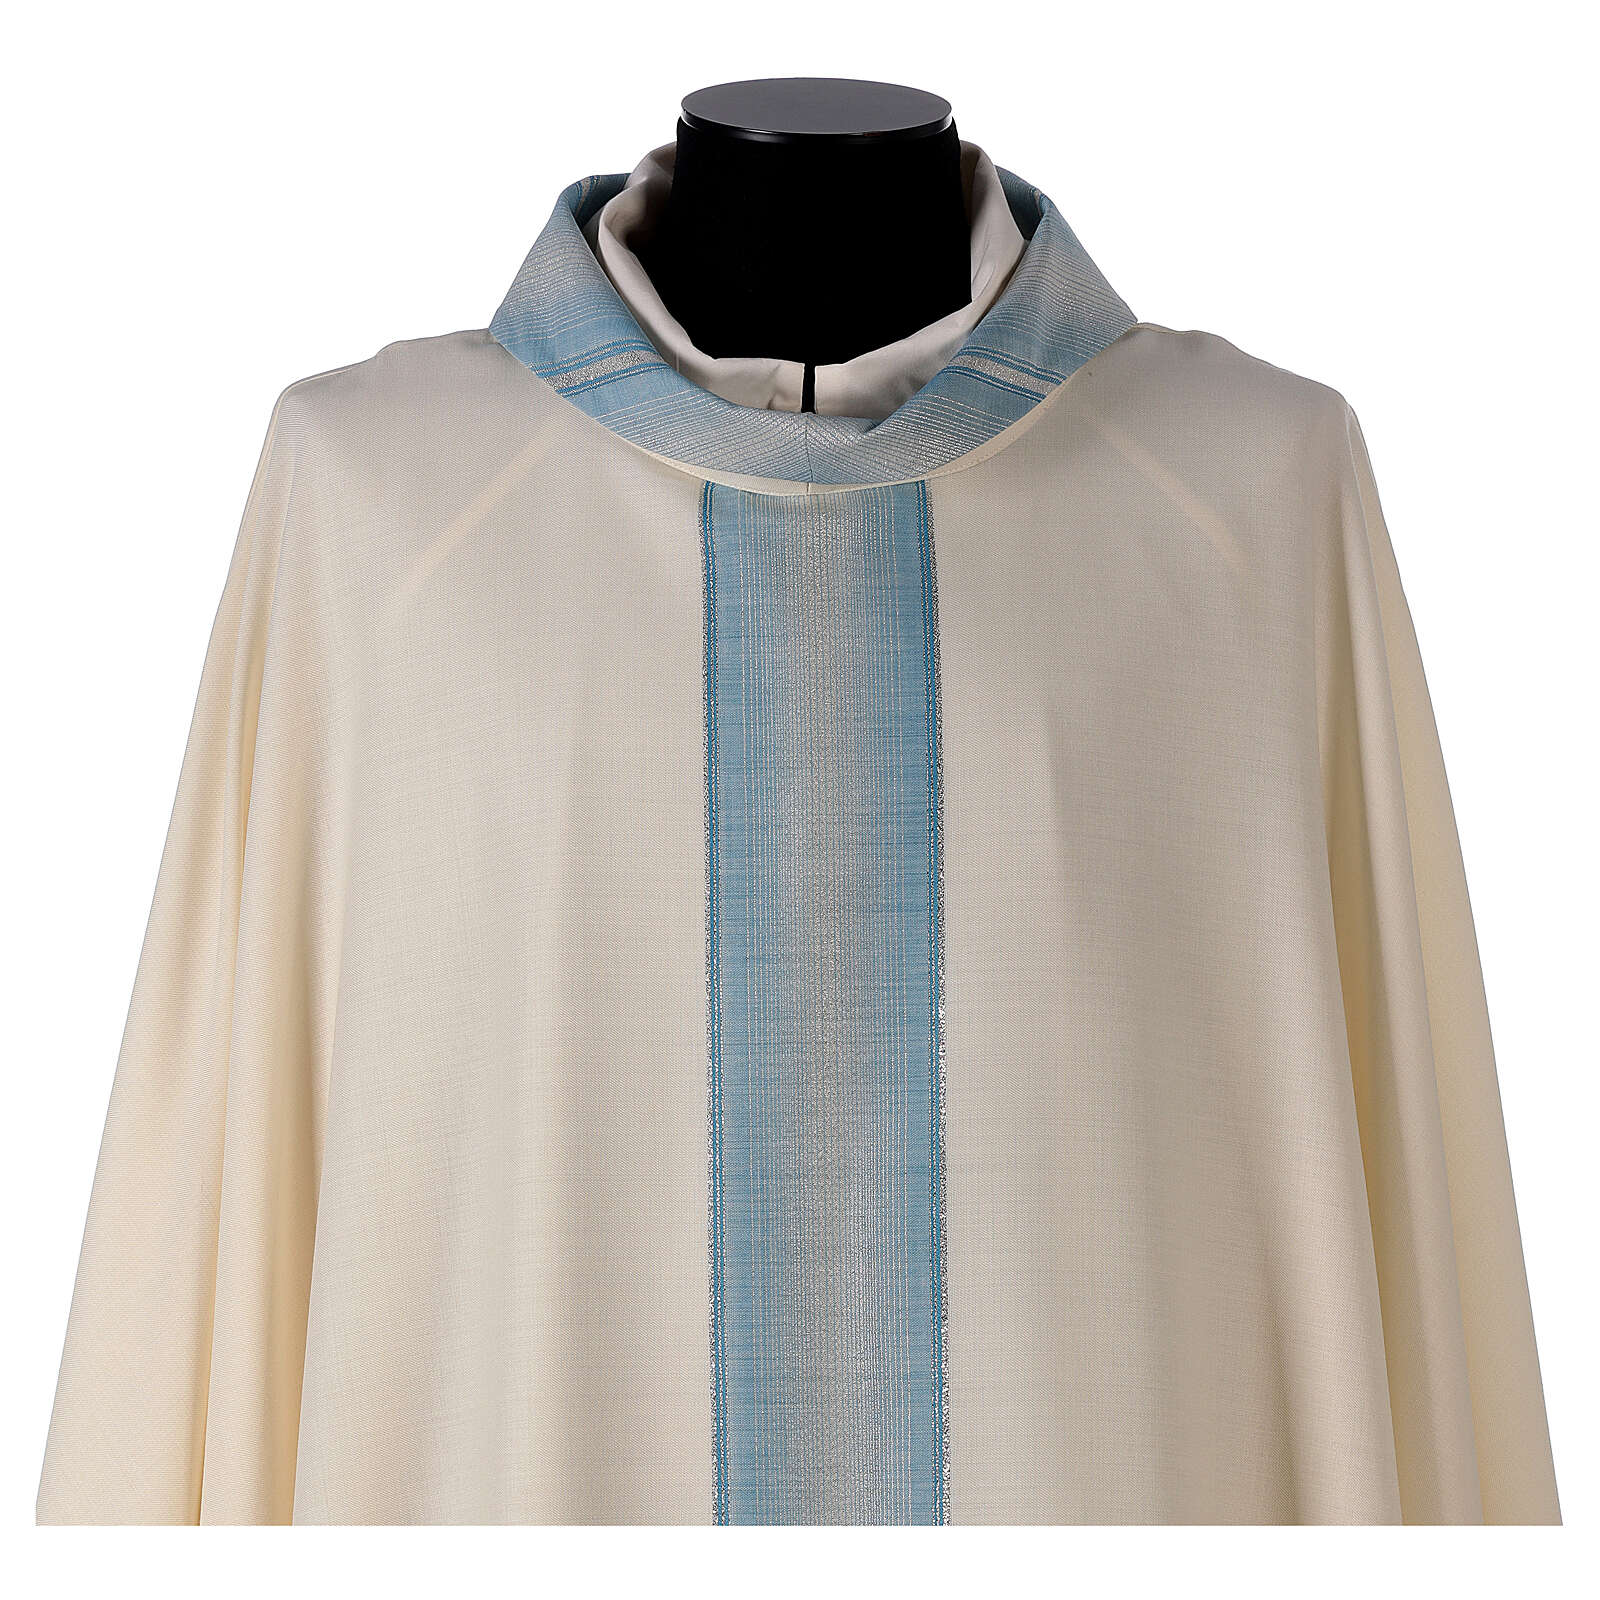 Chasuble mariale bande col avec rayures 97% laine 3% lurex 4